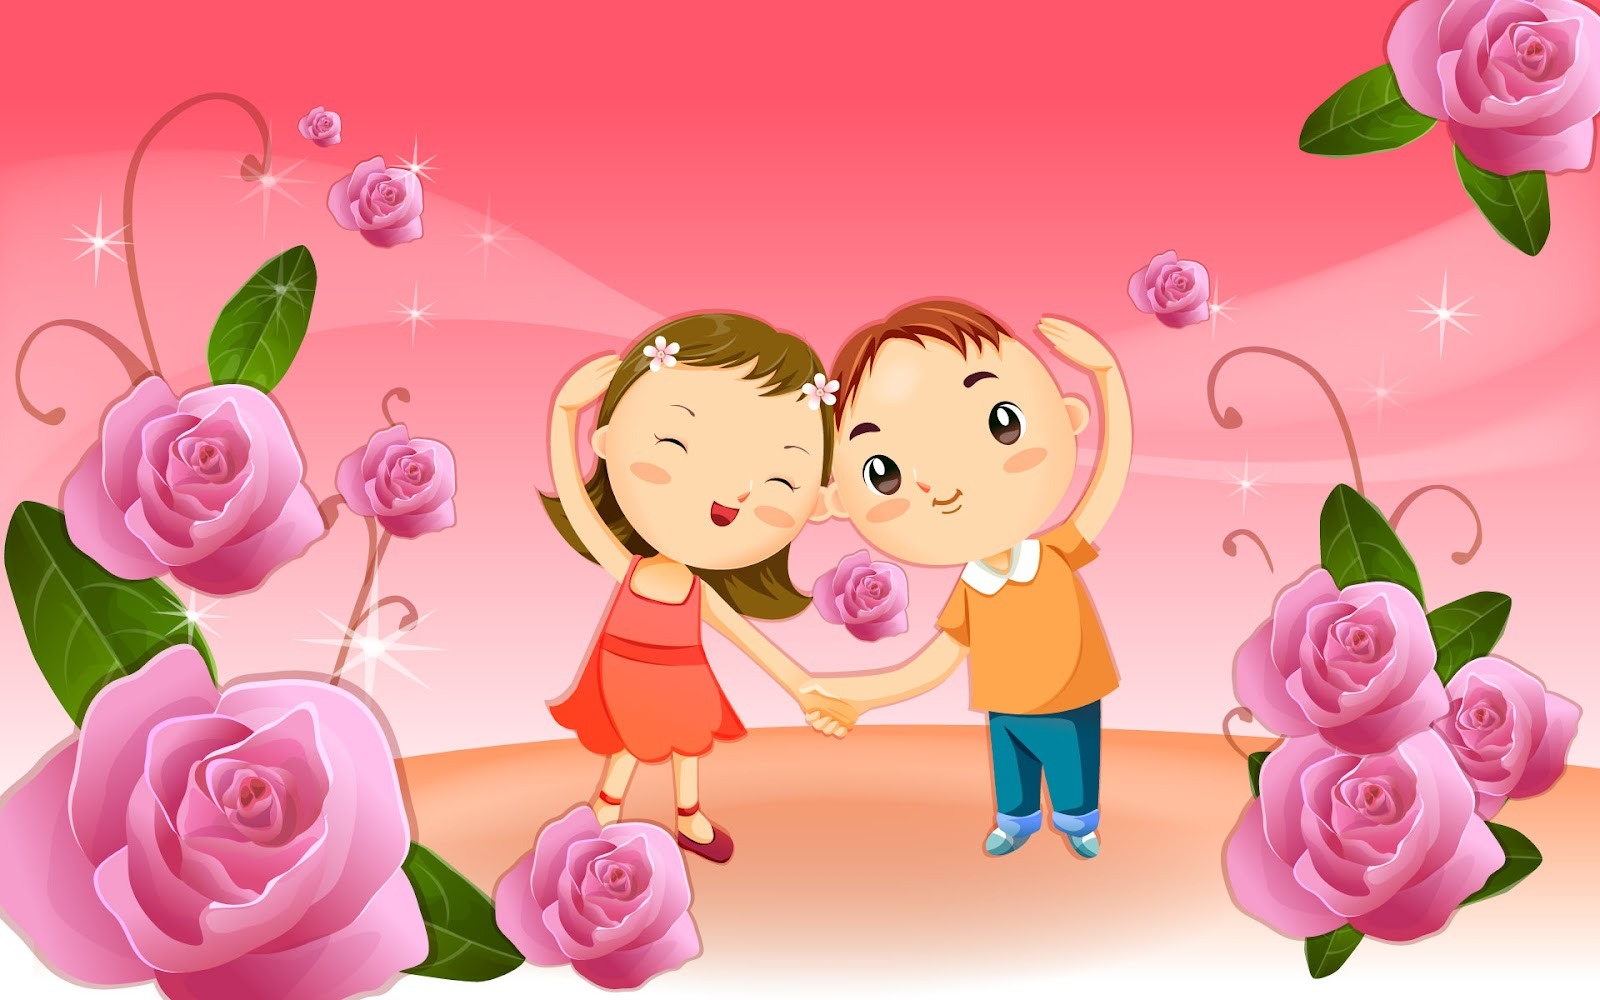 Romantic Love cartoon Wallpaper : romantic cartoons hd wallpapers